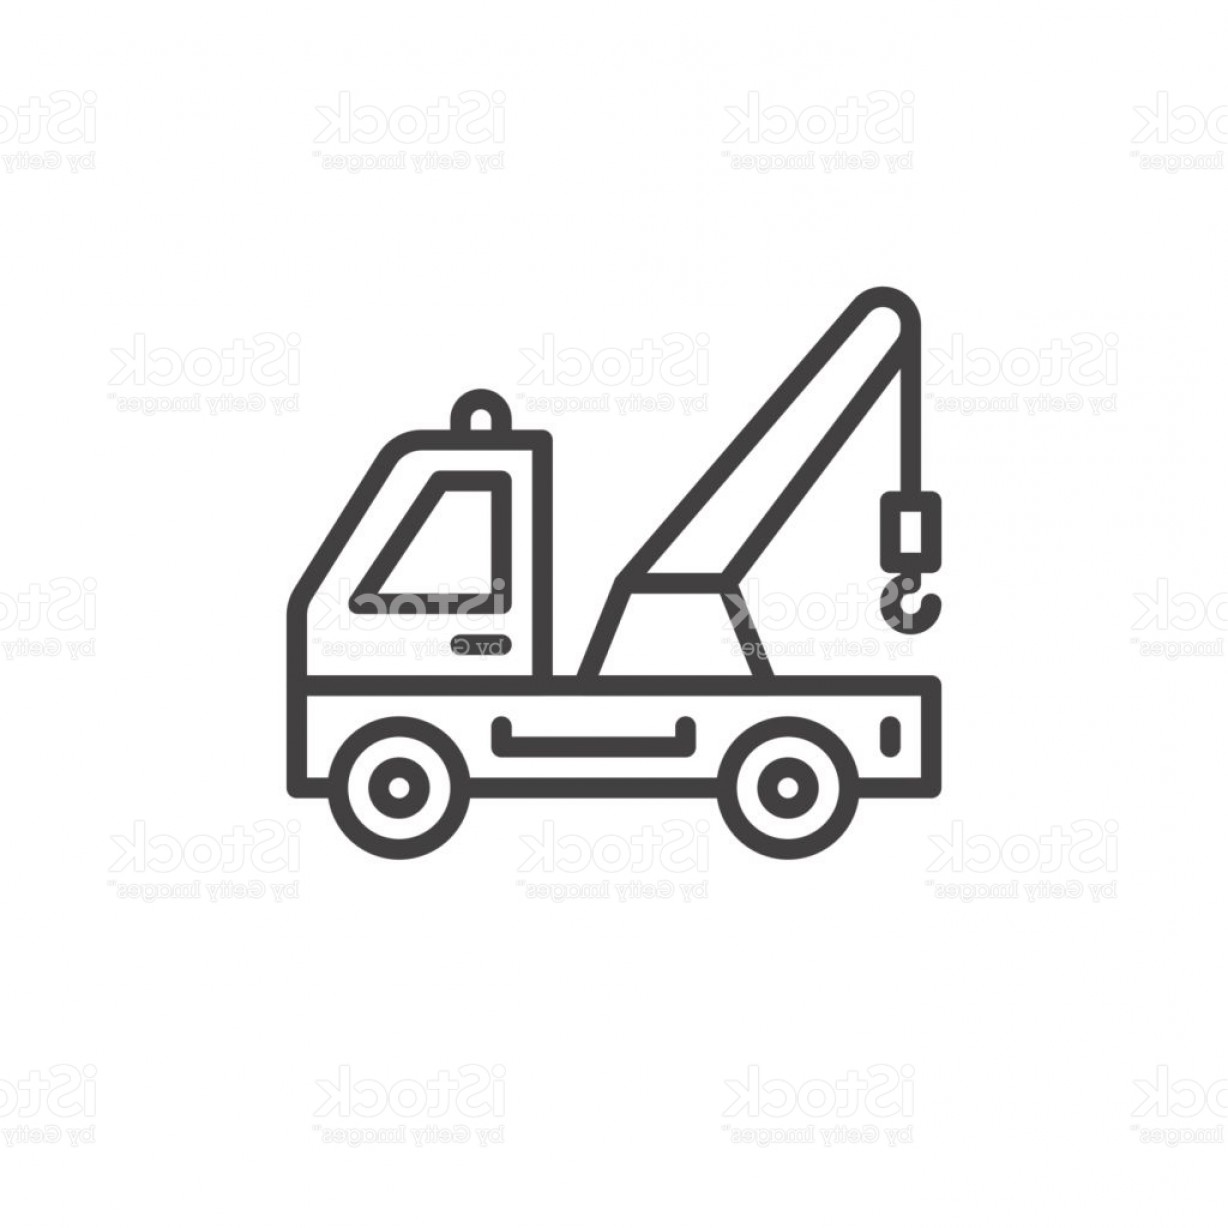 Towing Vector Clip Art: Tow Truck Line Icon Outline Vector Sign Linear Style Pictogram Isolated On White Gm